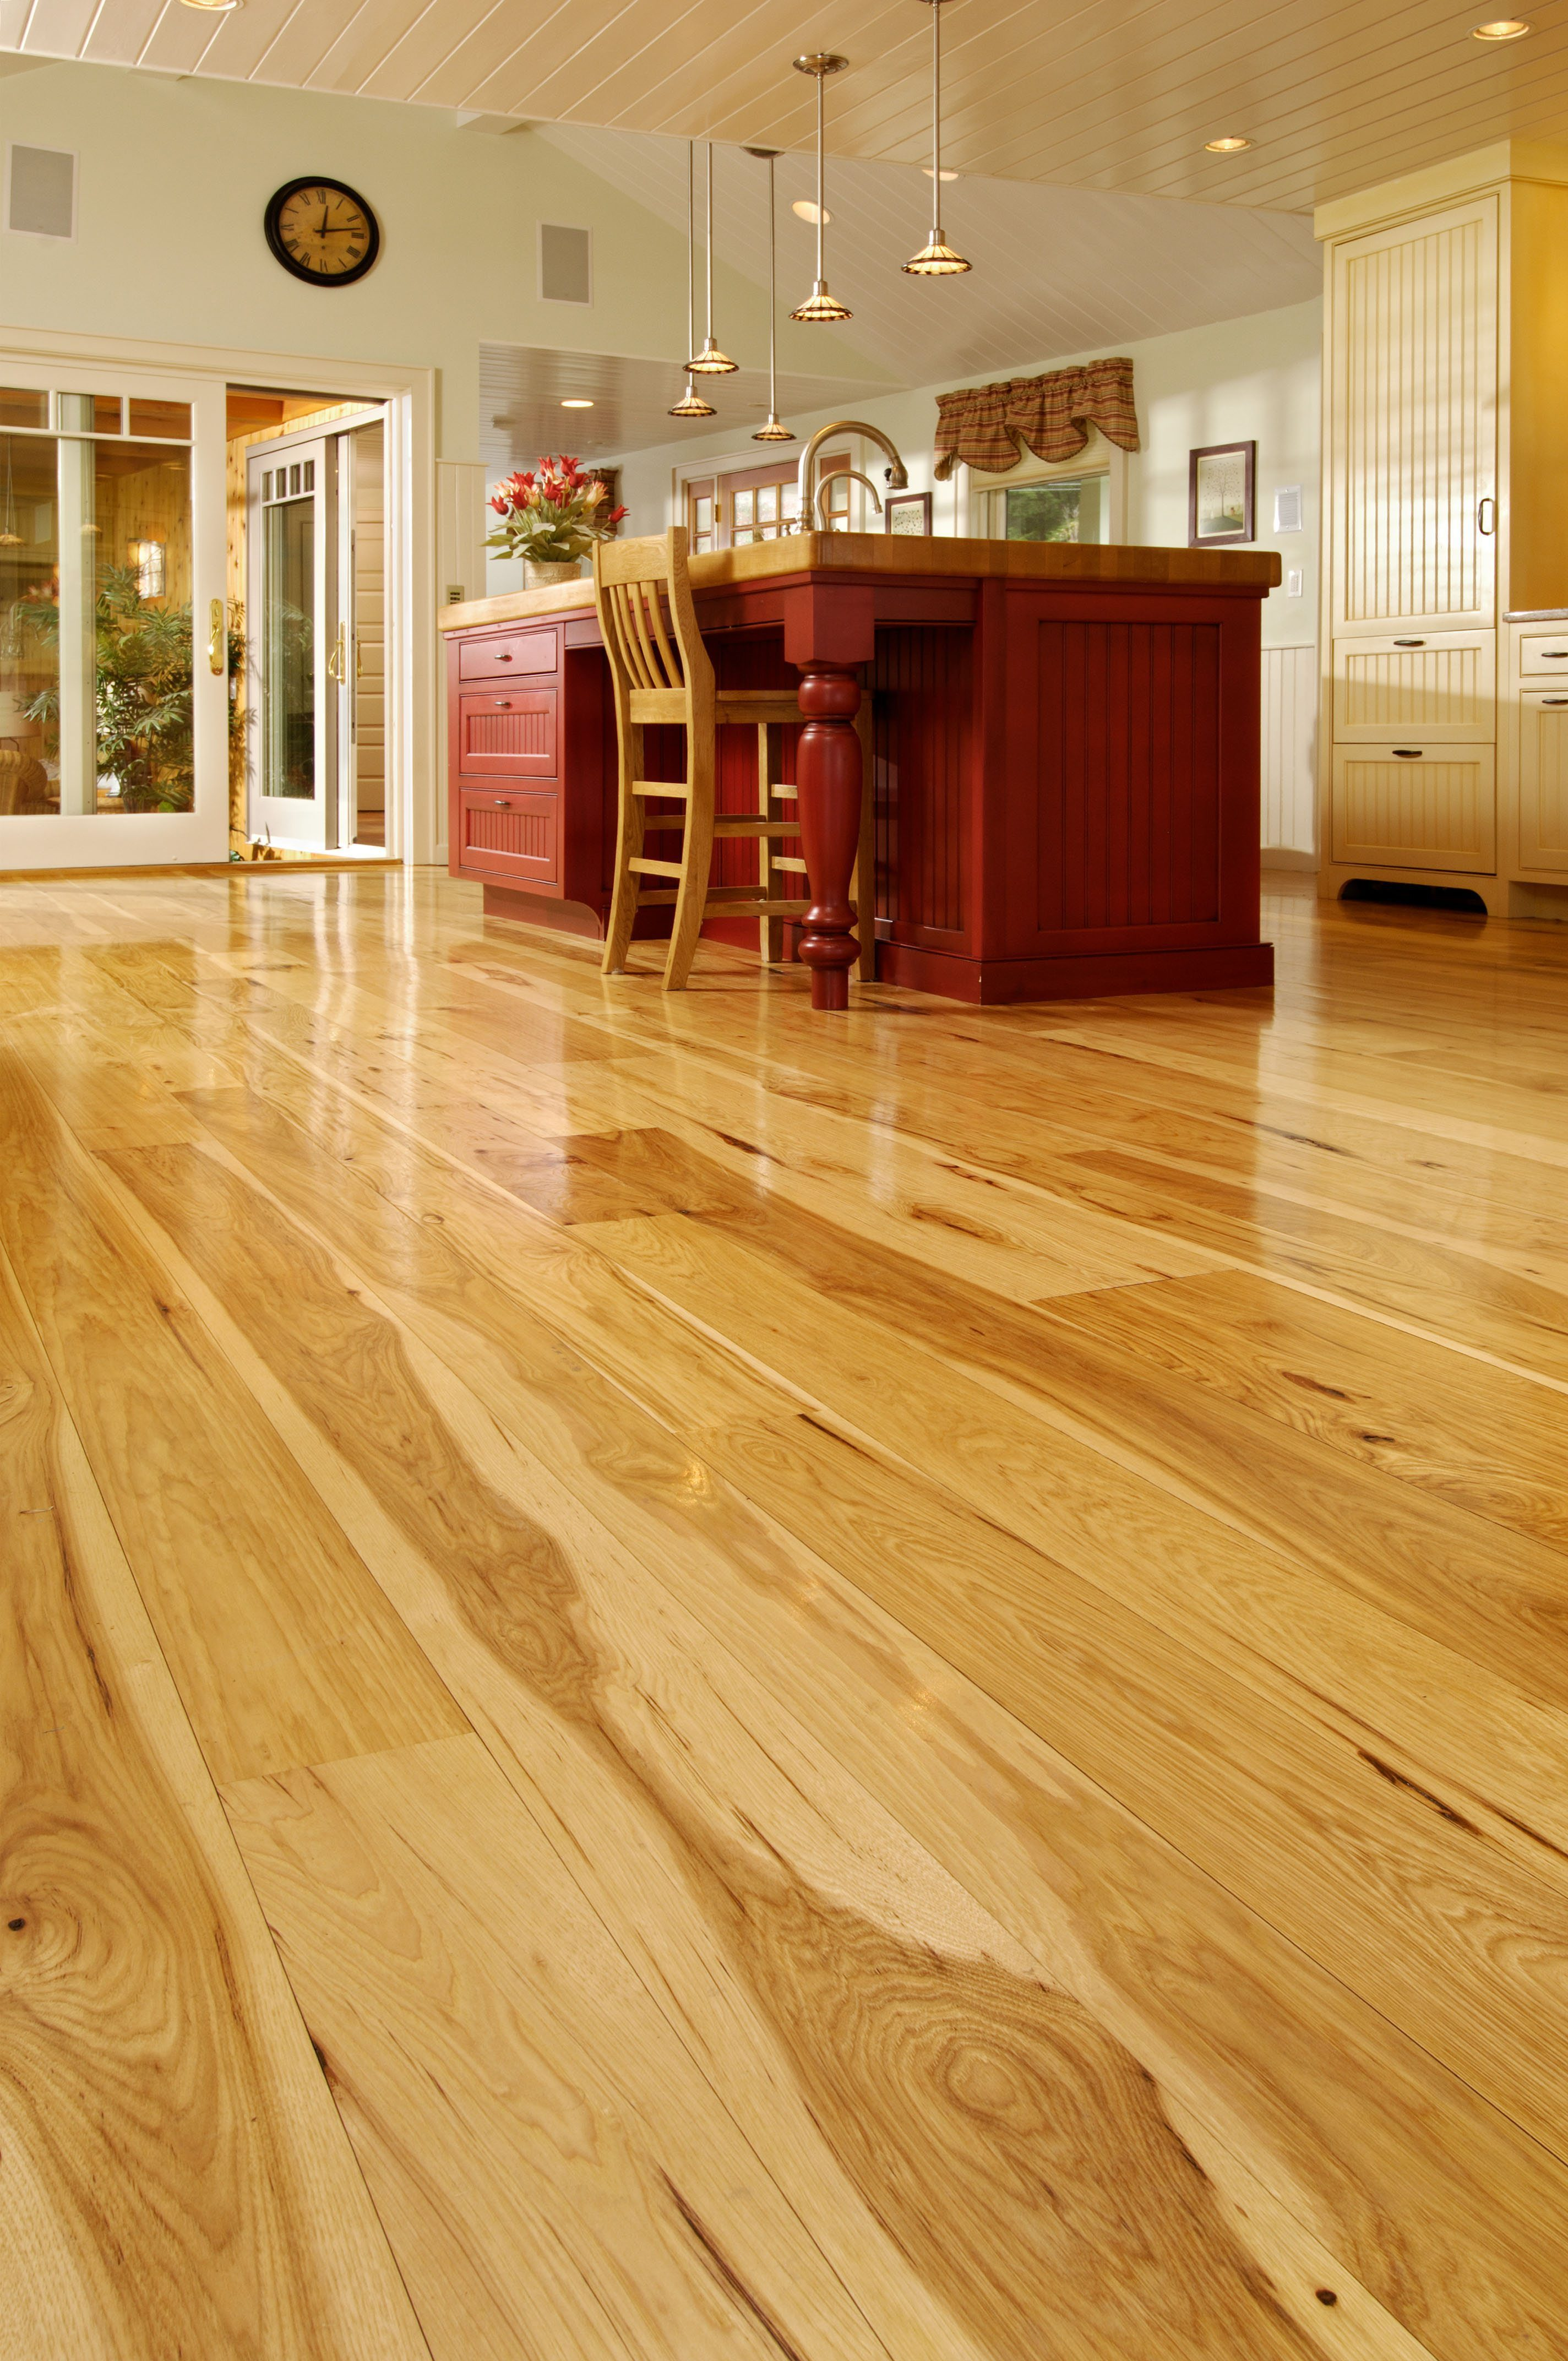 Hickory Hardwood Flooring In Kitchen Space